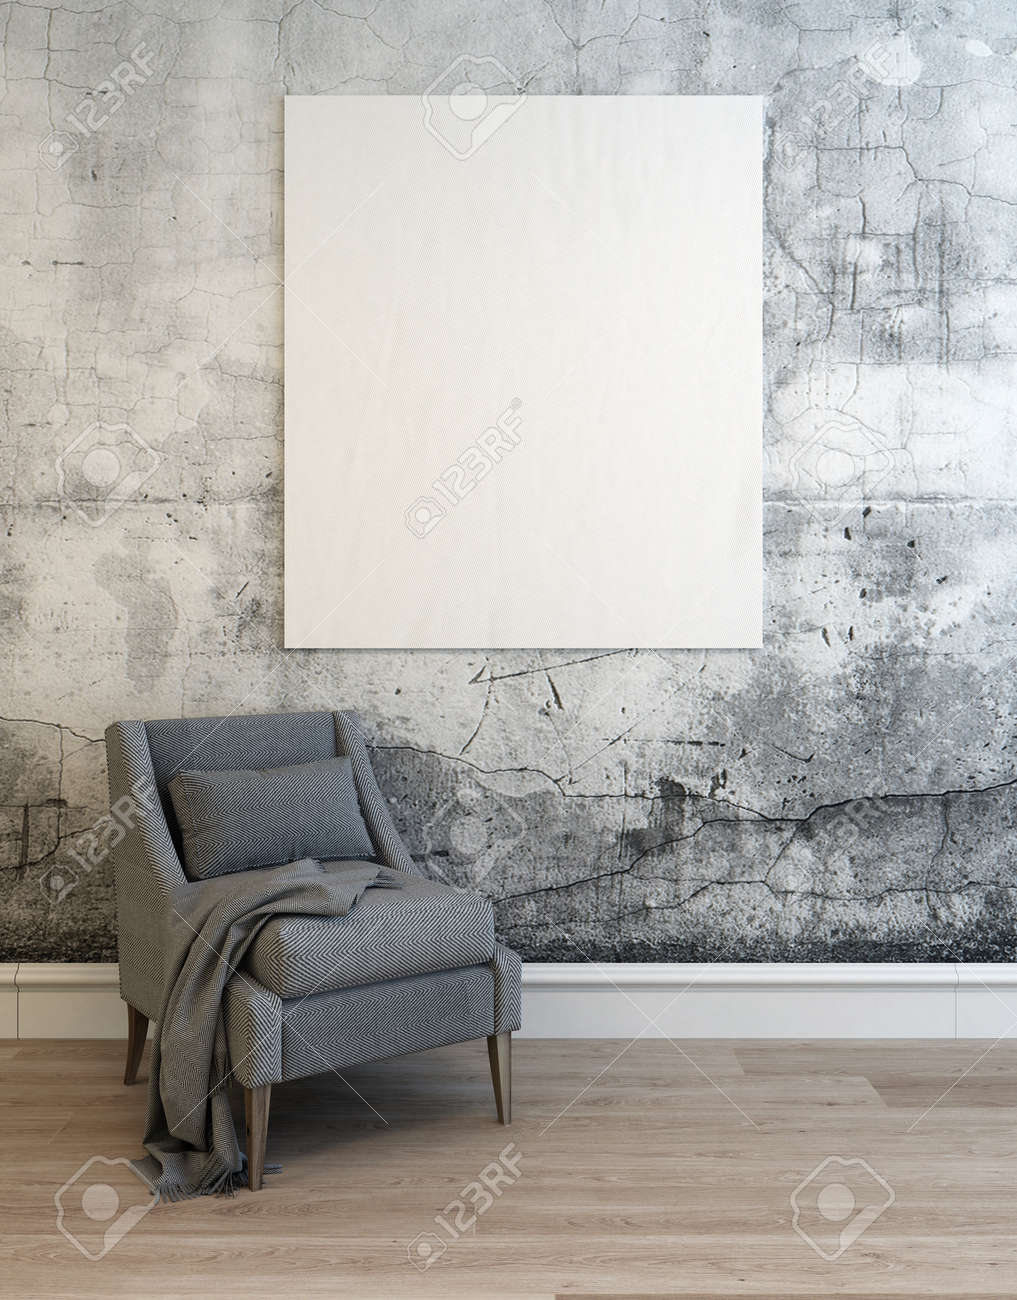 3D render of empty concrete walled room with gray sofa chair over hardwood floor and white lower molding. 3d Rendering. Standard-Bild - 54595979